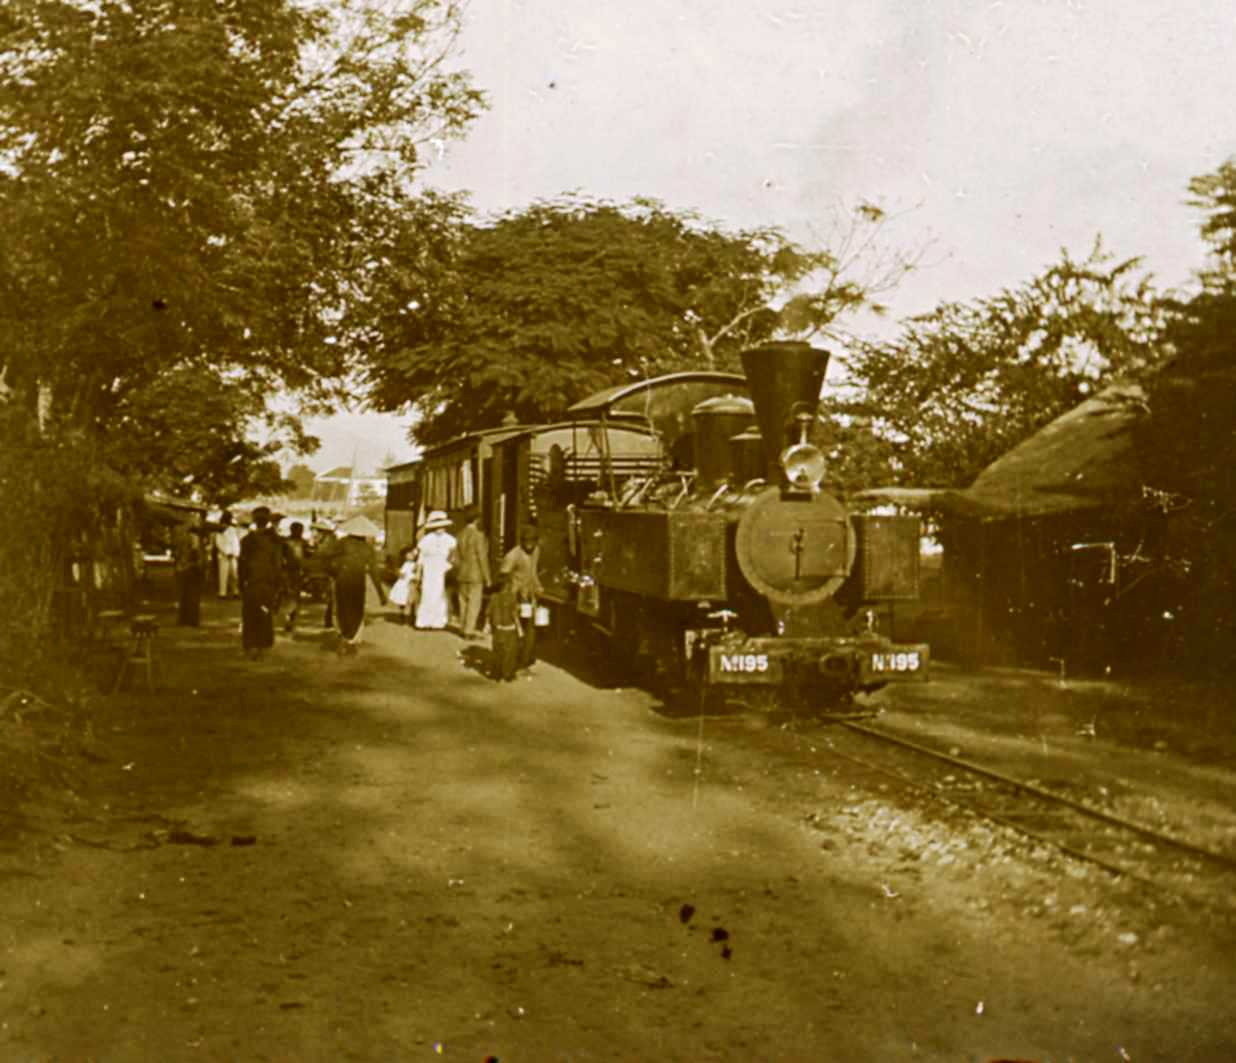 By Tram to Hoi An - HISTORIC VIETNAM